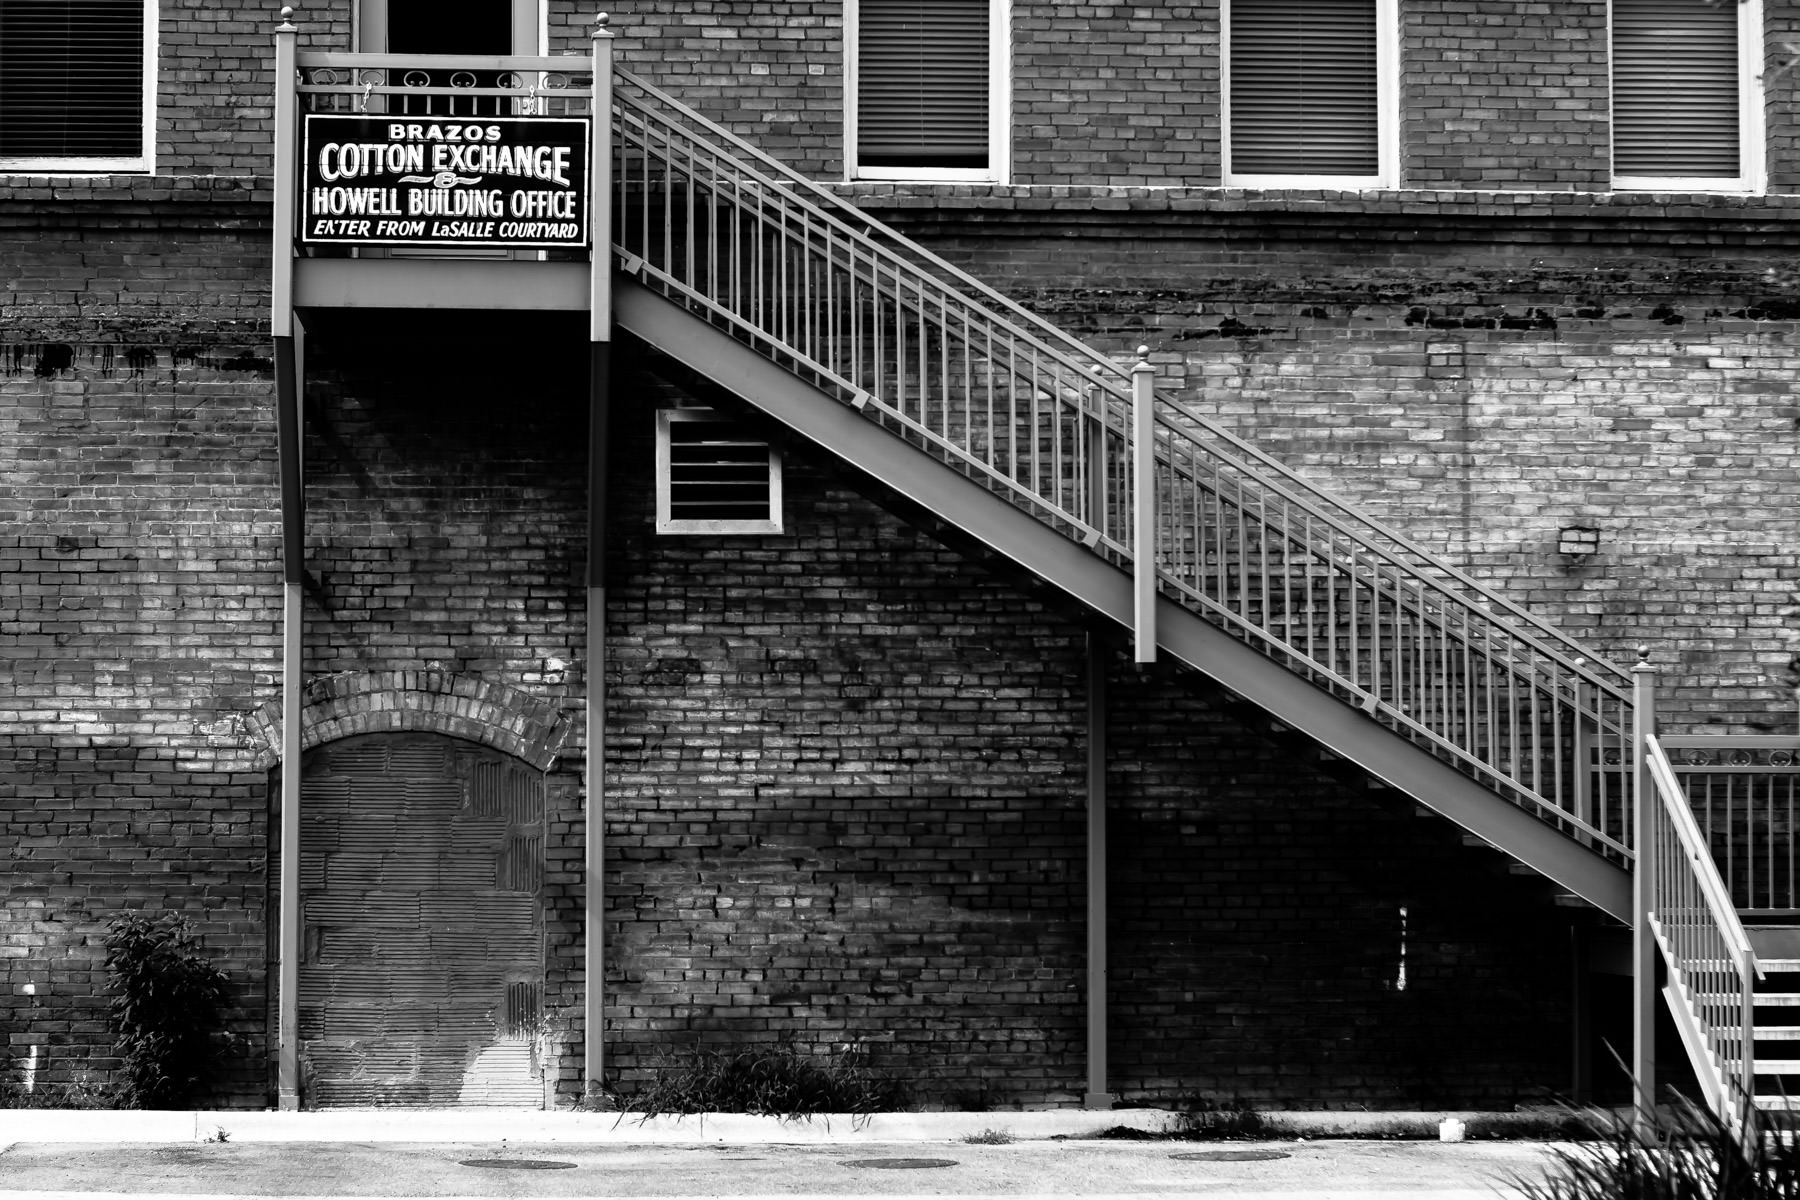 Stairs leading to the back entrance of the Brazos Cotton Exchange, Bryan, Texas.